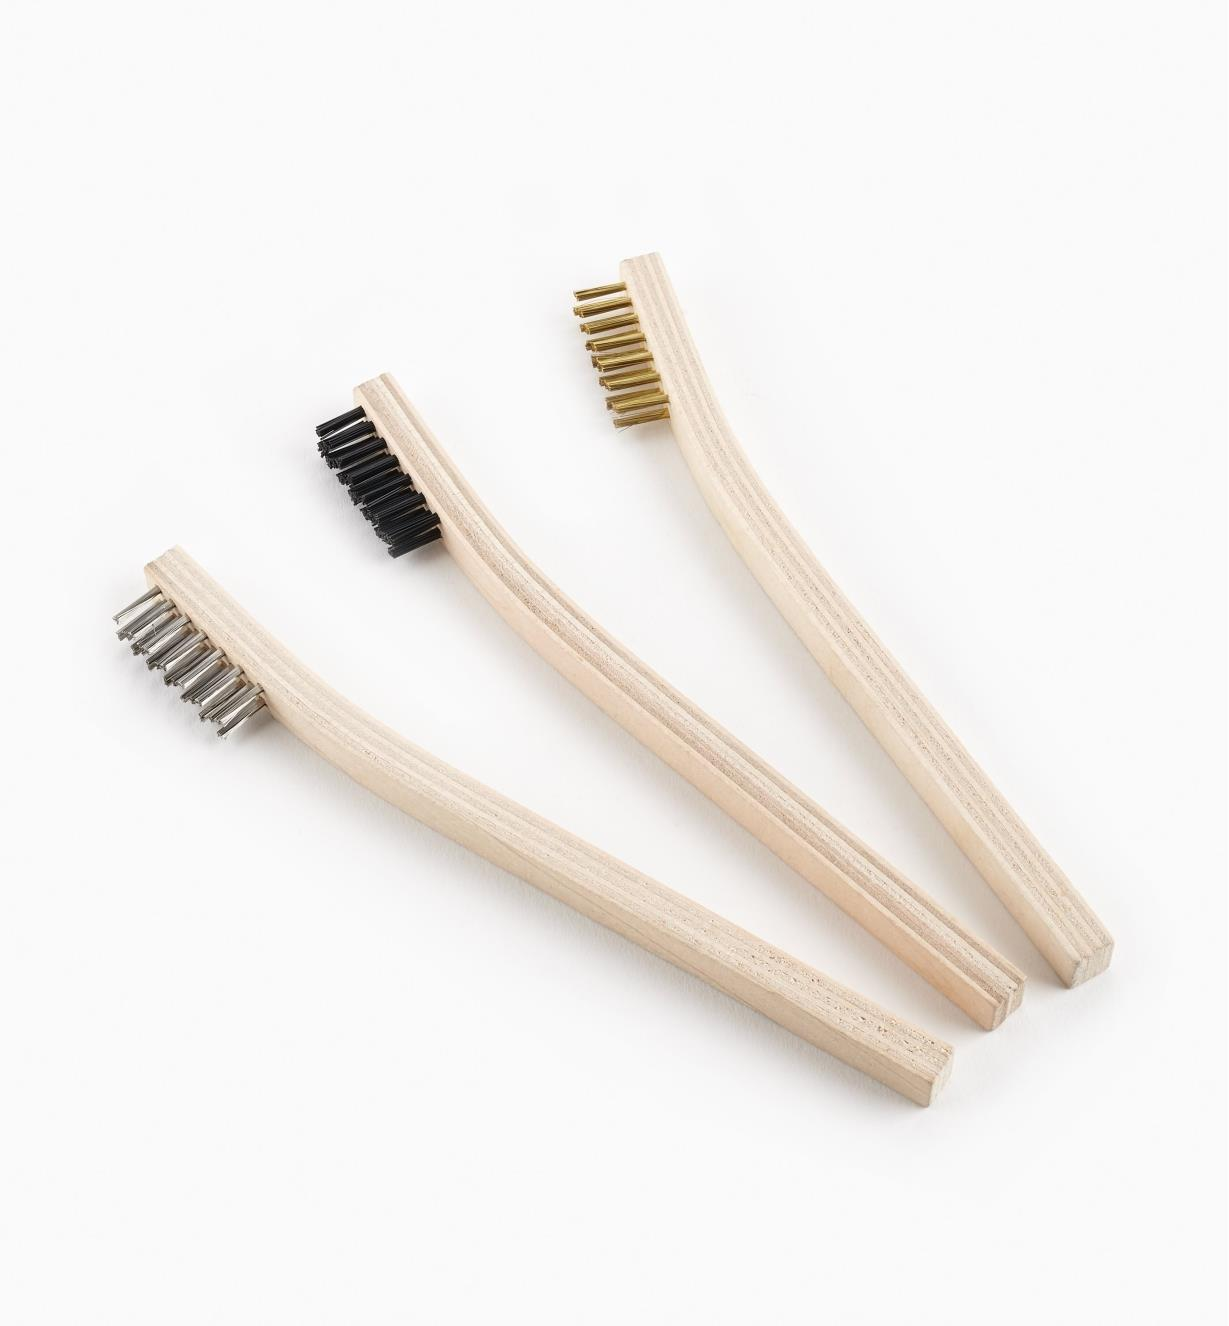 83K0911 - Set of 3 Brushes